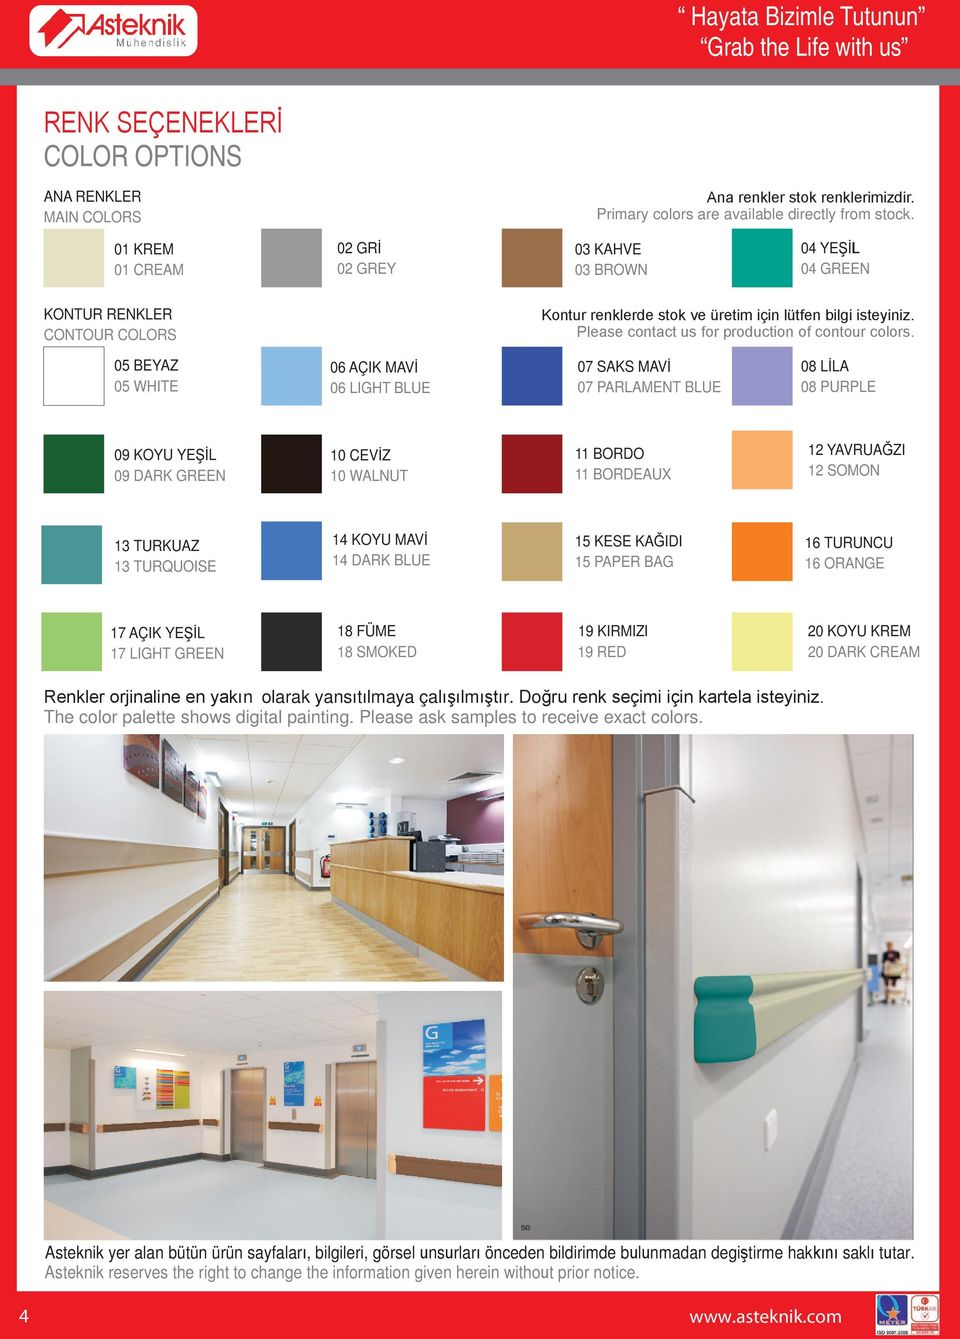 Please contact us for production of contour colors.